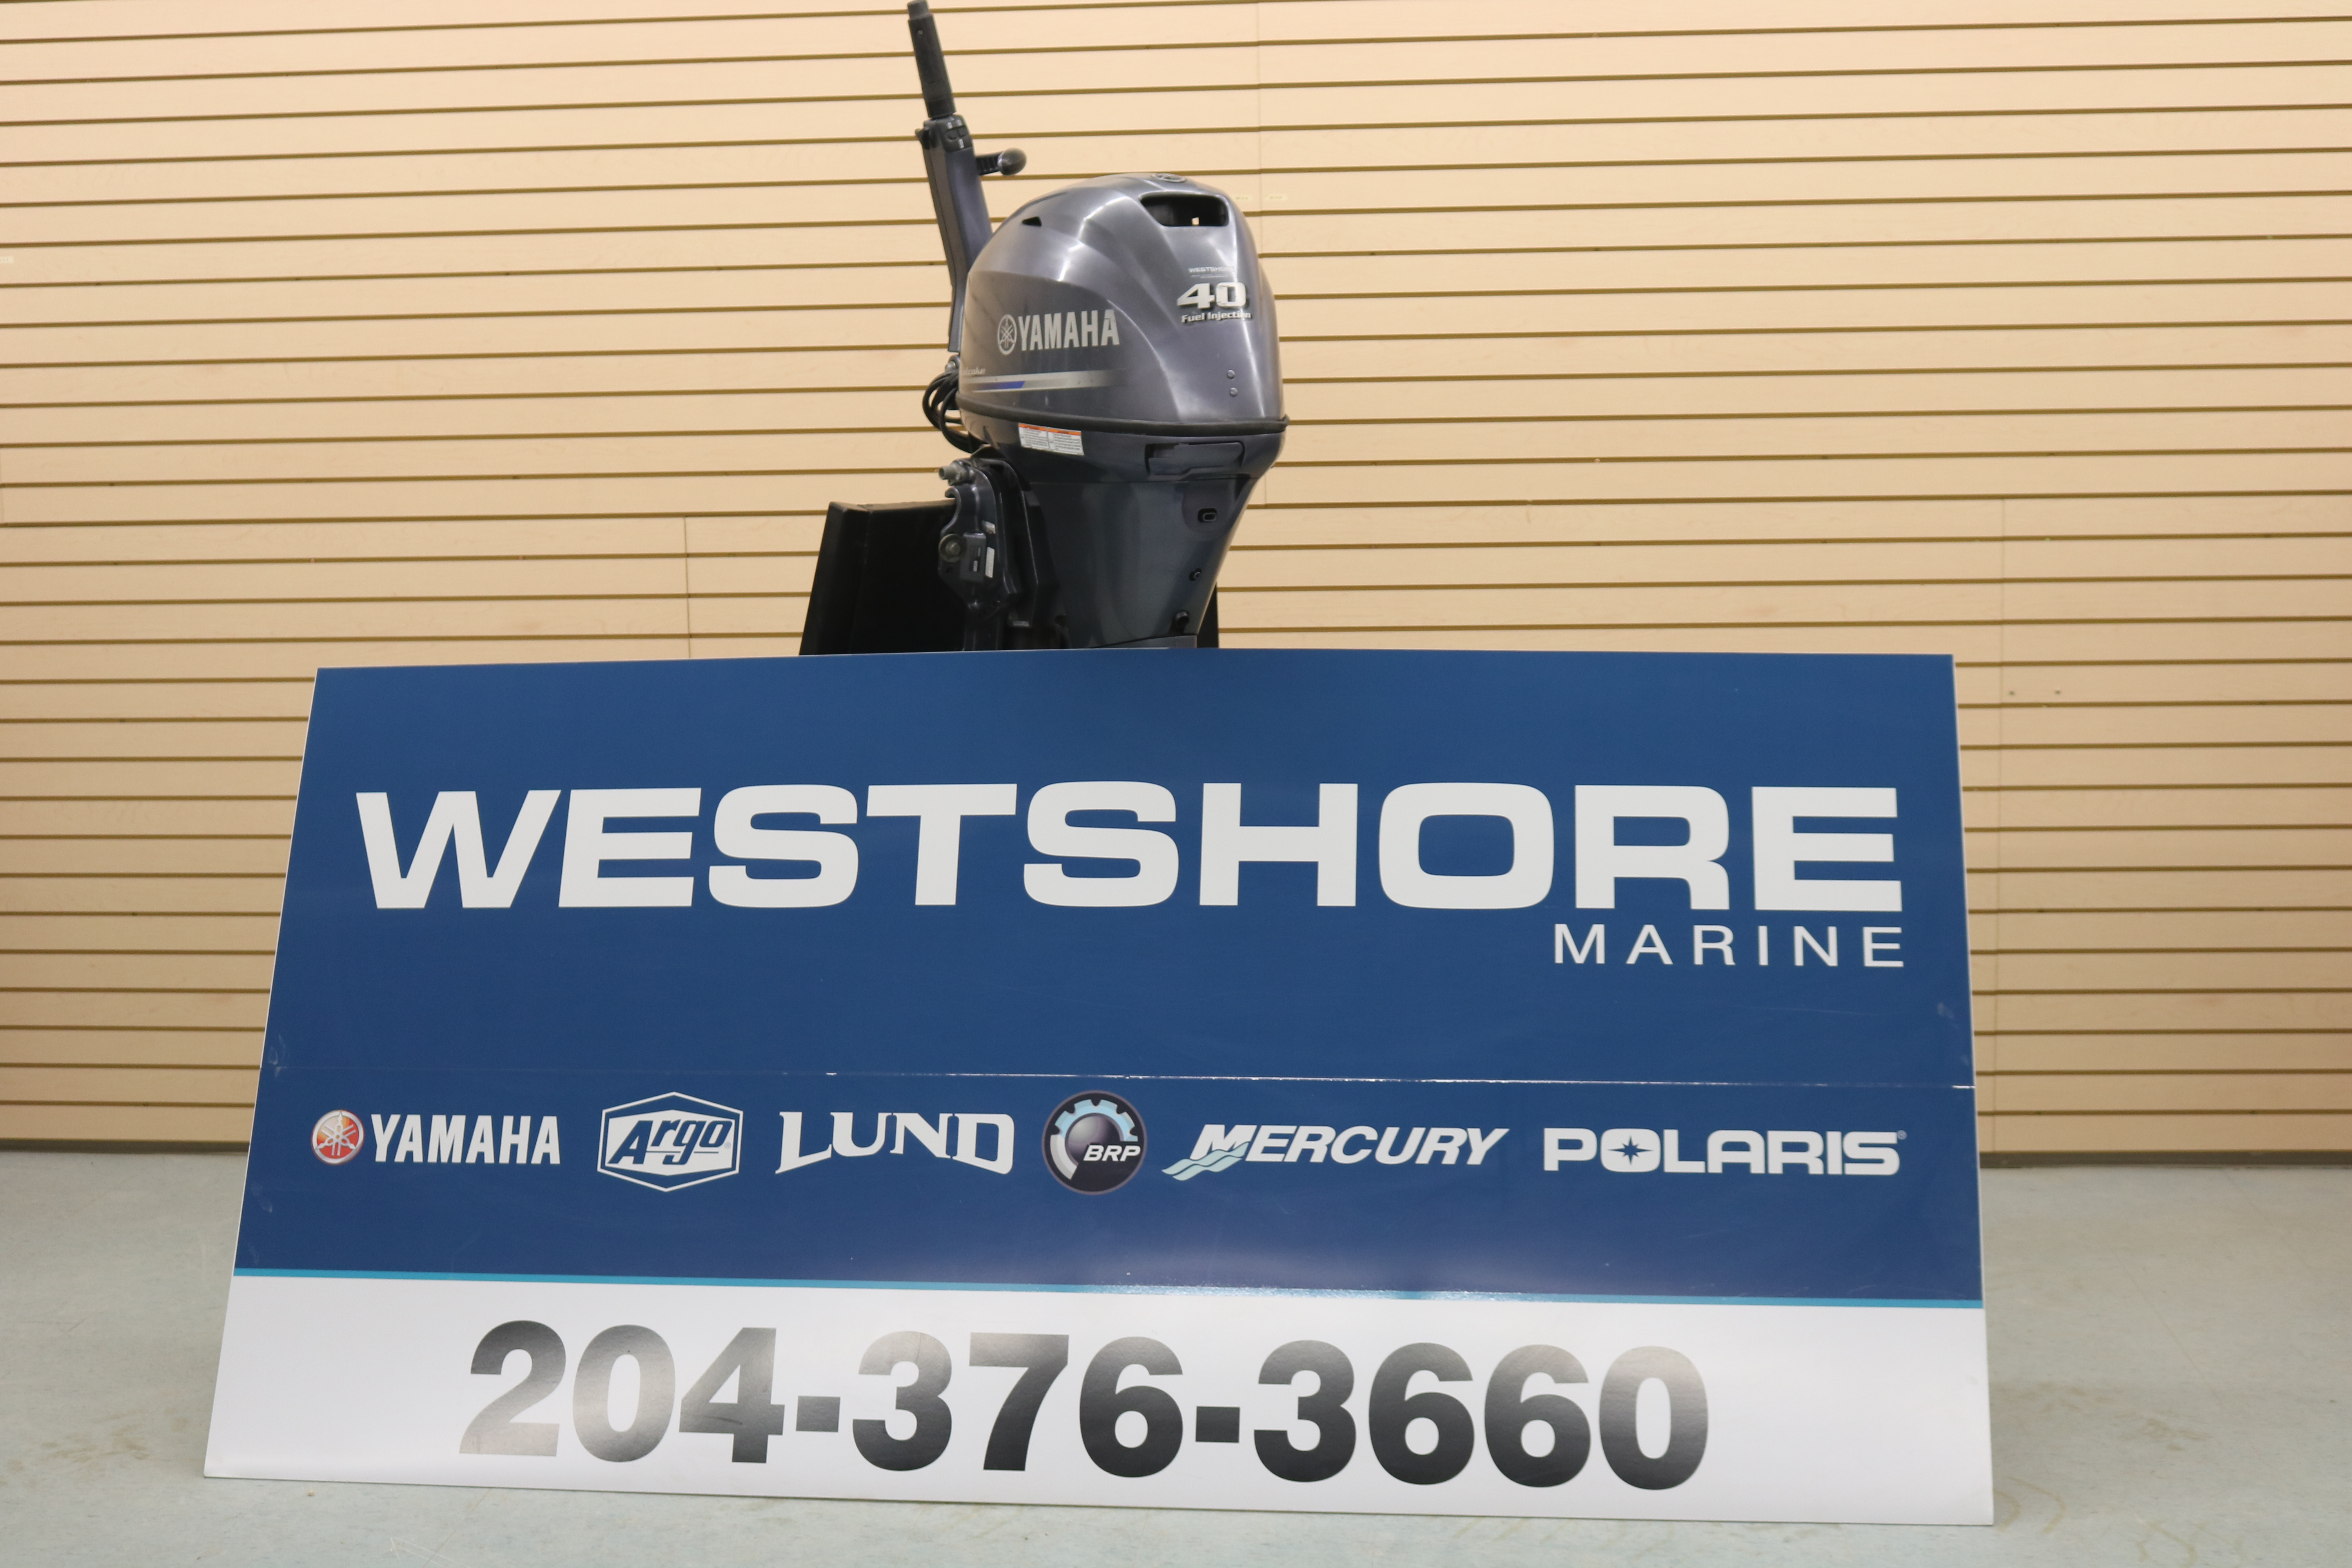 Used Outboard Motors for Sale in Arborg | Westshore Marine